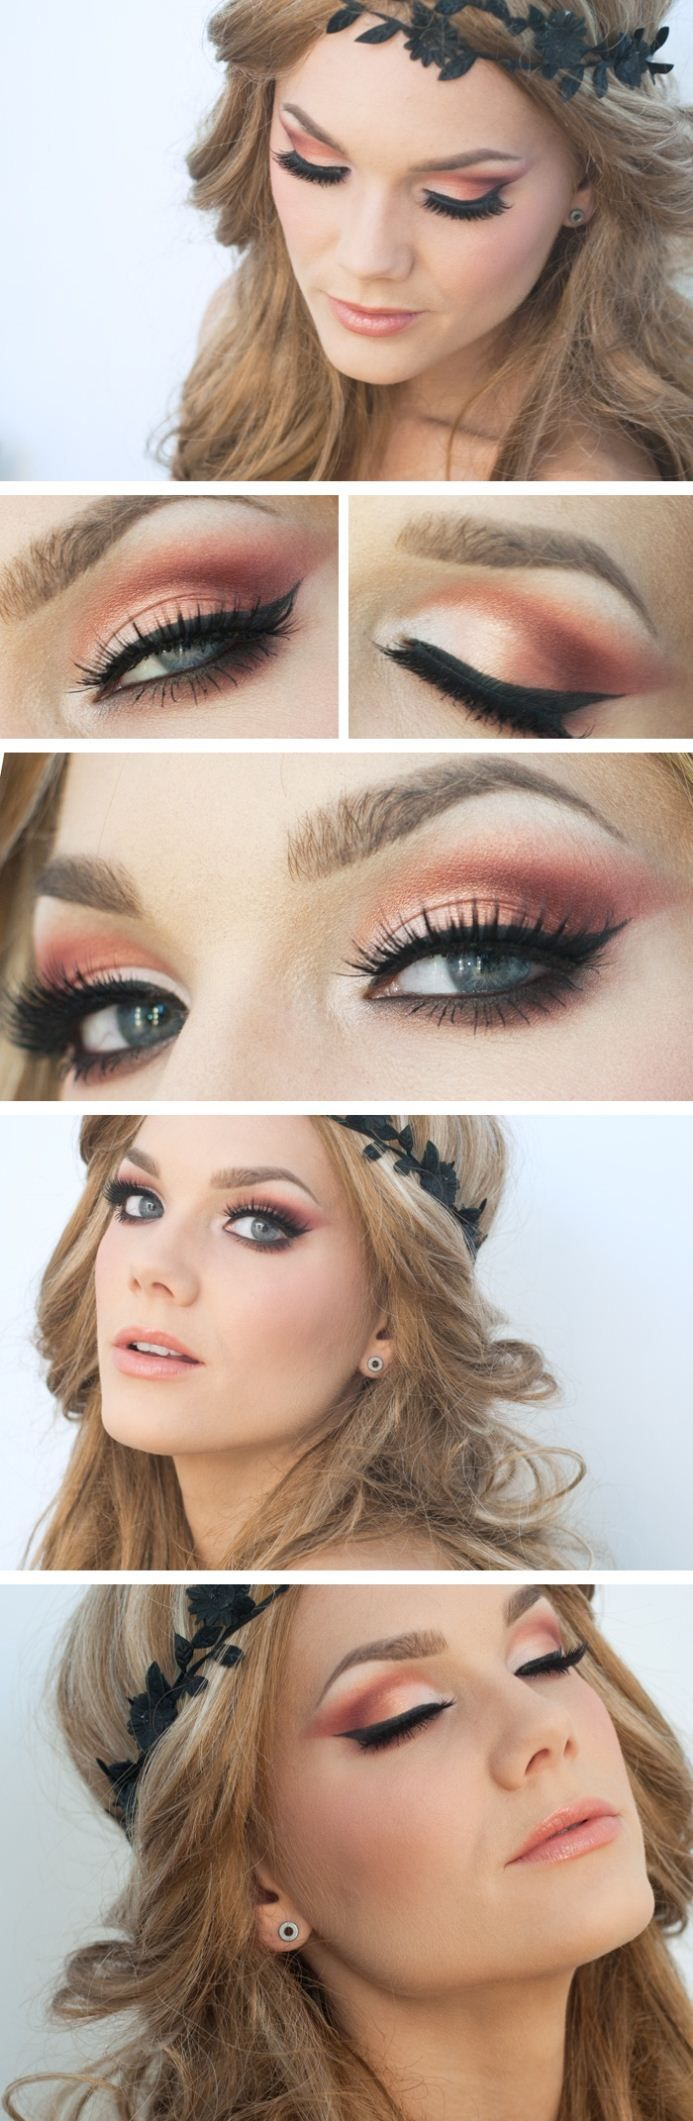 See here the appropriate makeup for schoolu inspire me pinterest